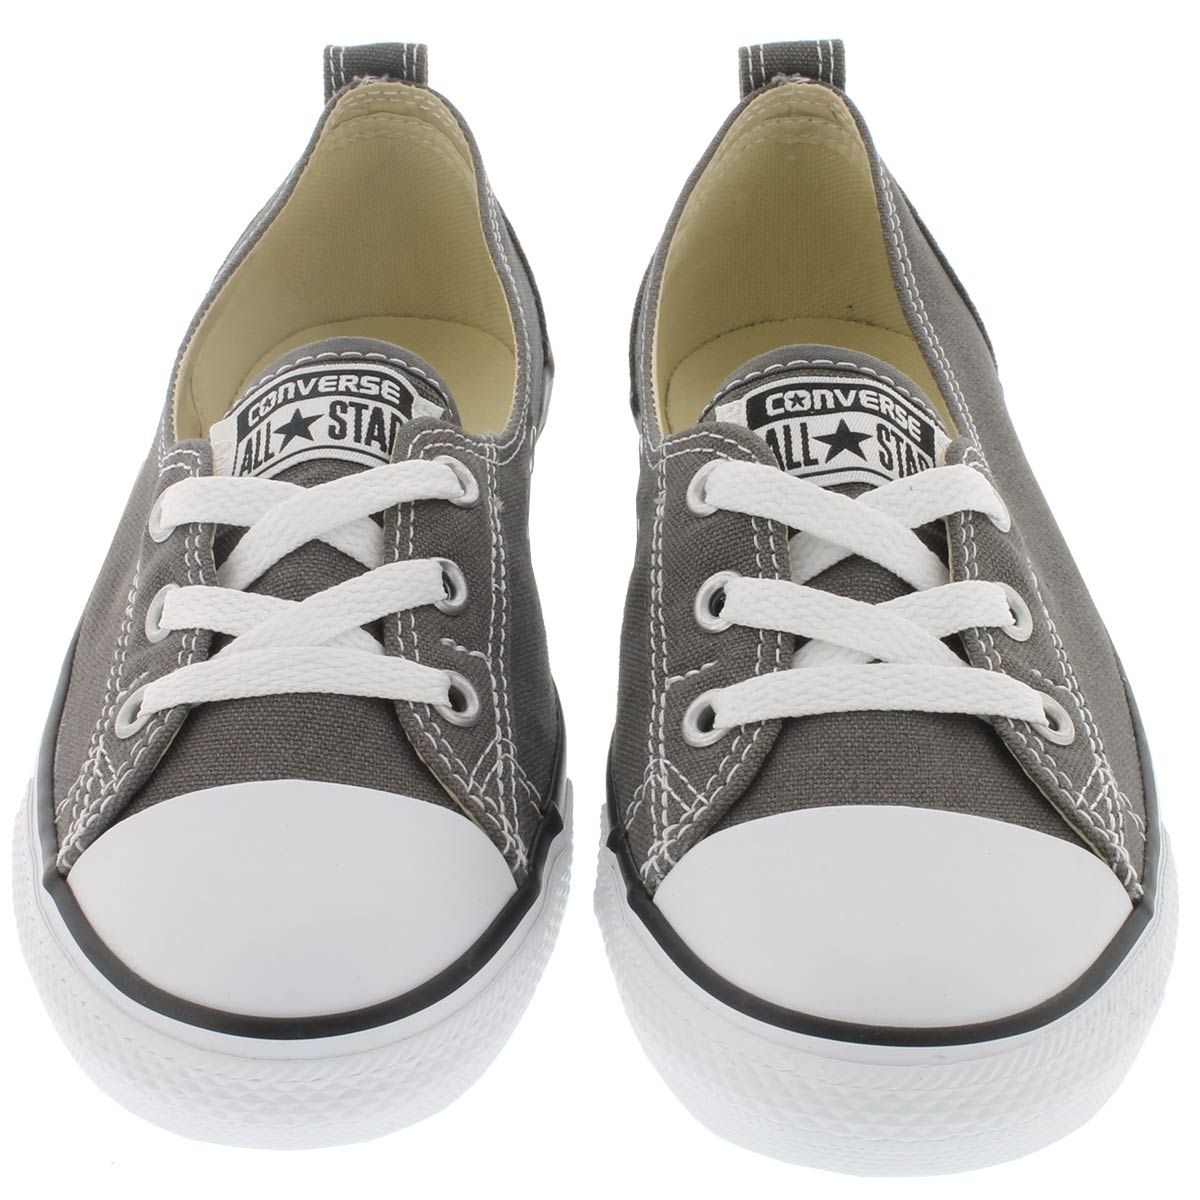 c93788a28f86 Converse Women s CT ALL STAR BALLET LACE charcoal slip-ons 547164C ...